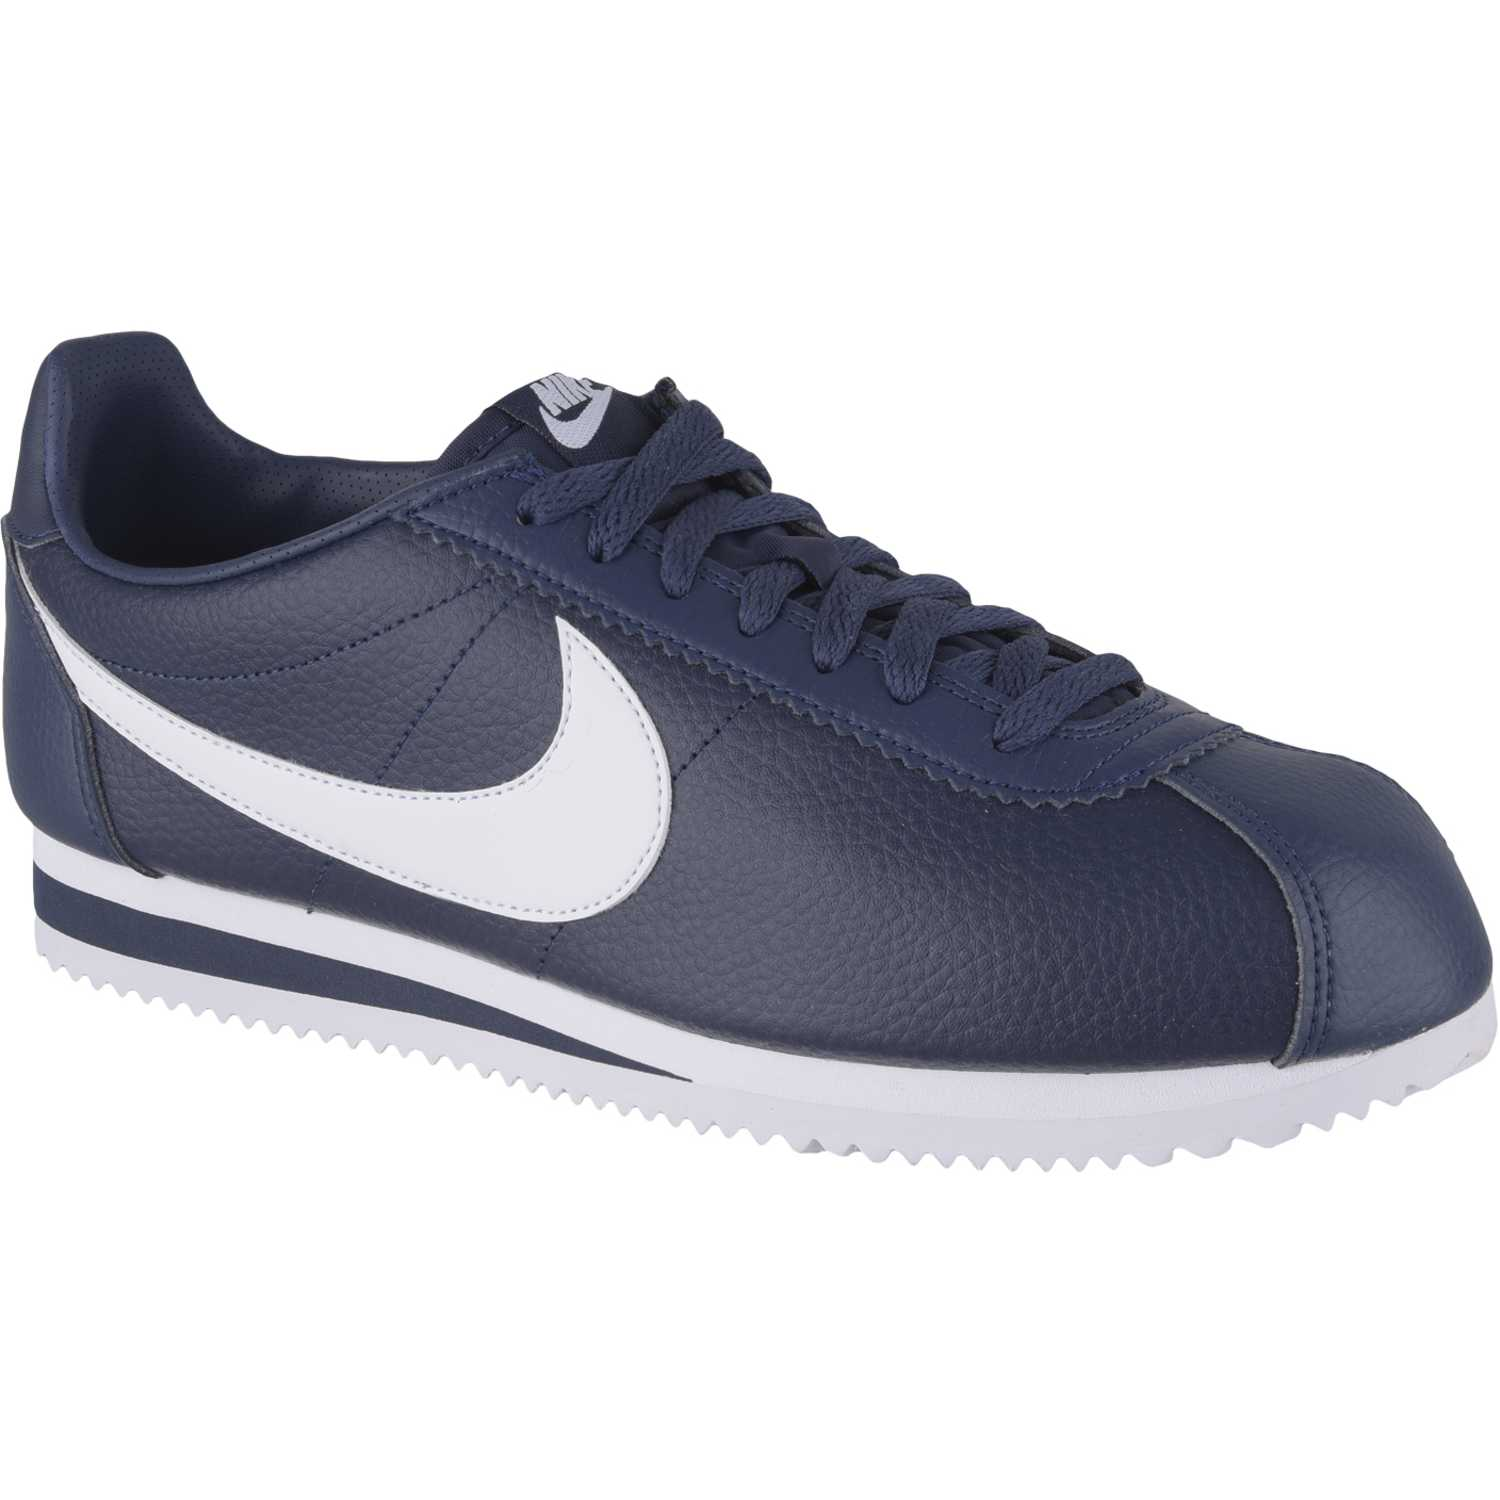 best website b0654 ec566 Zapatilla de Hombre Nike Azul   blanco classic cortez leather